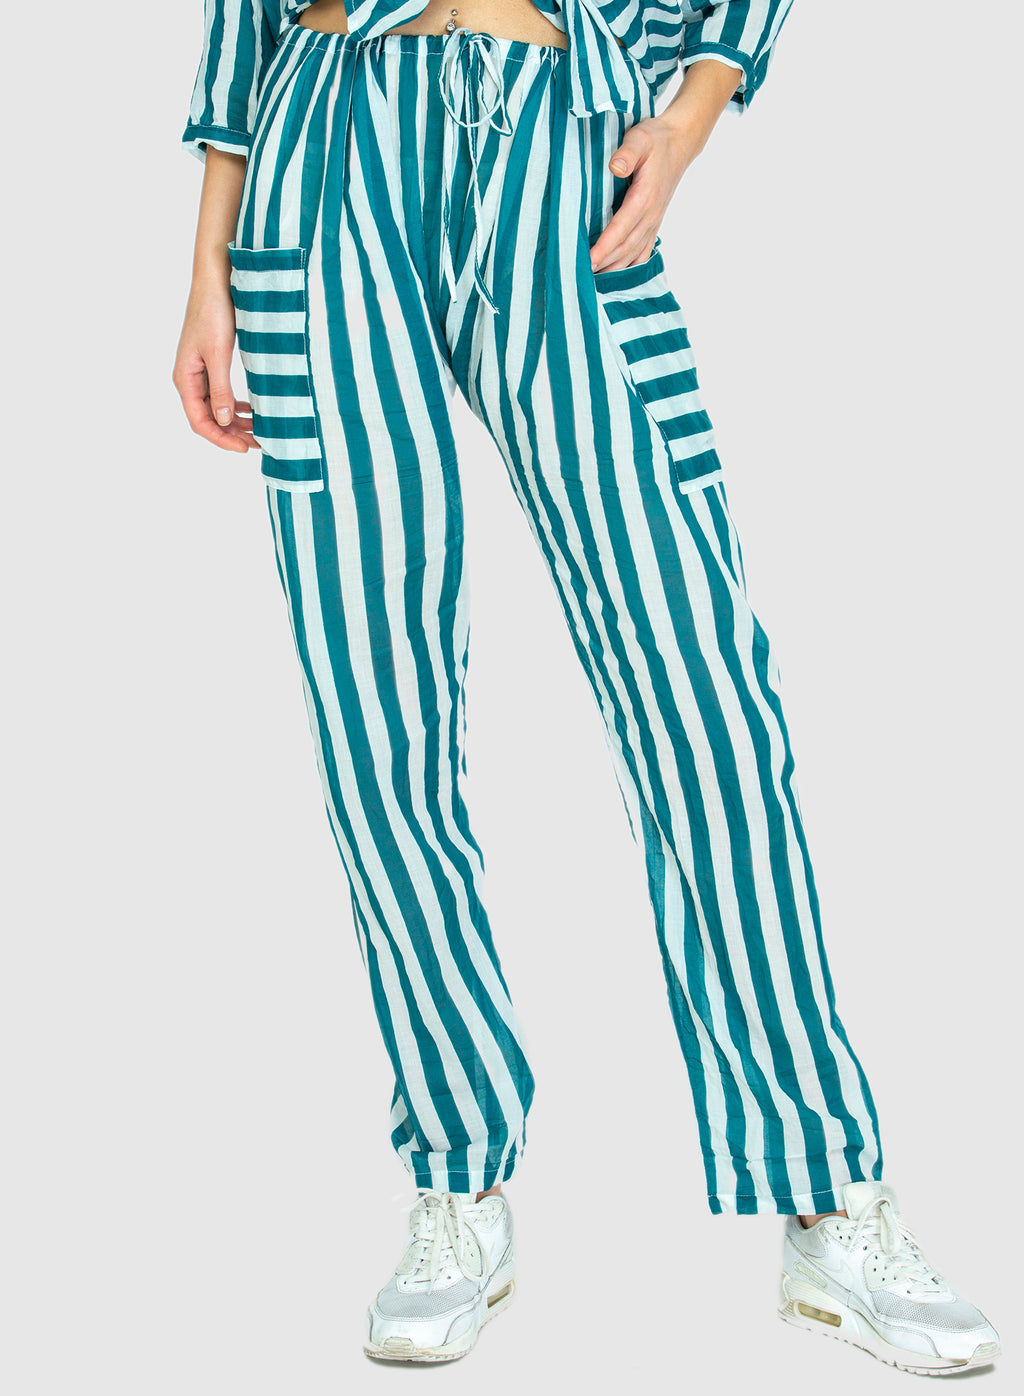 THE DRAWSTRING PANTS- Whippy Stripe Teal/White